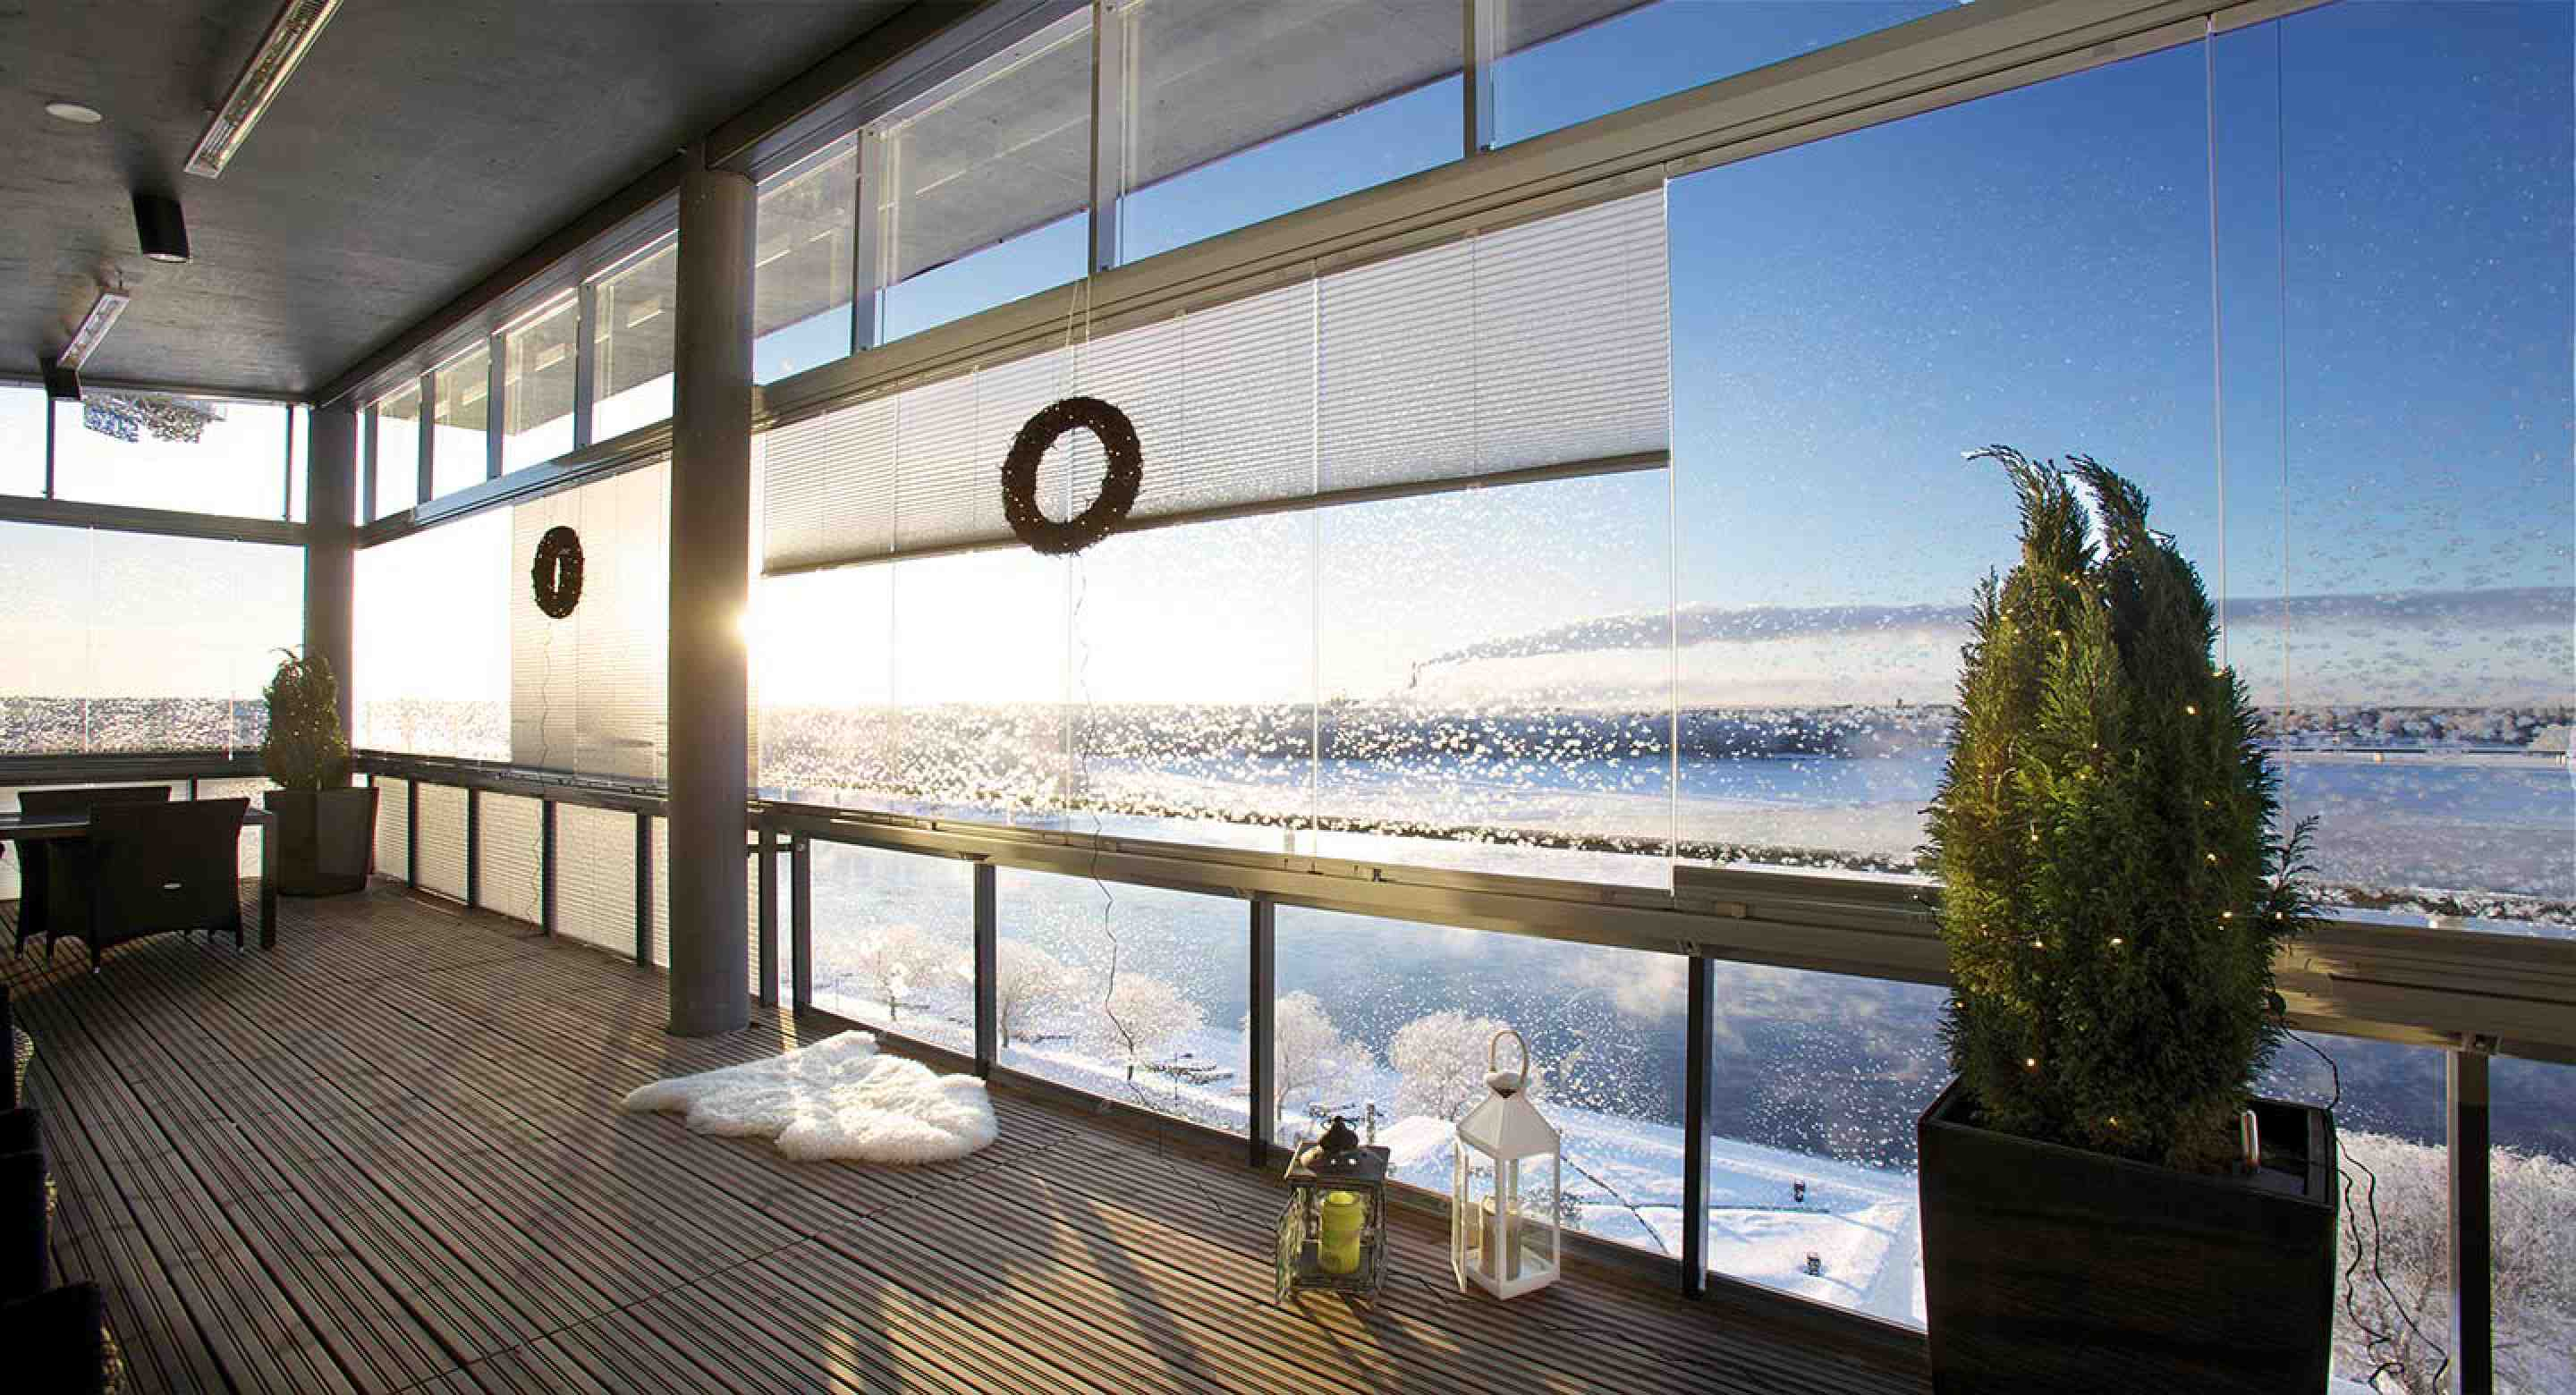 balcony glass, balcony glass in toronto, balcony glass in vancouver, balcony glass in burnaby, balcony glass in burlington, retractable balcony glass, frameless retractable glass, lumon, lumon balcony glass, balcony glass canada